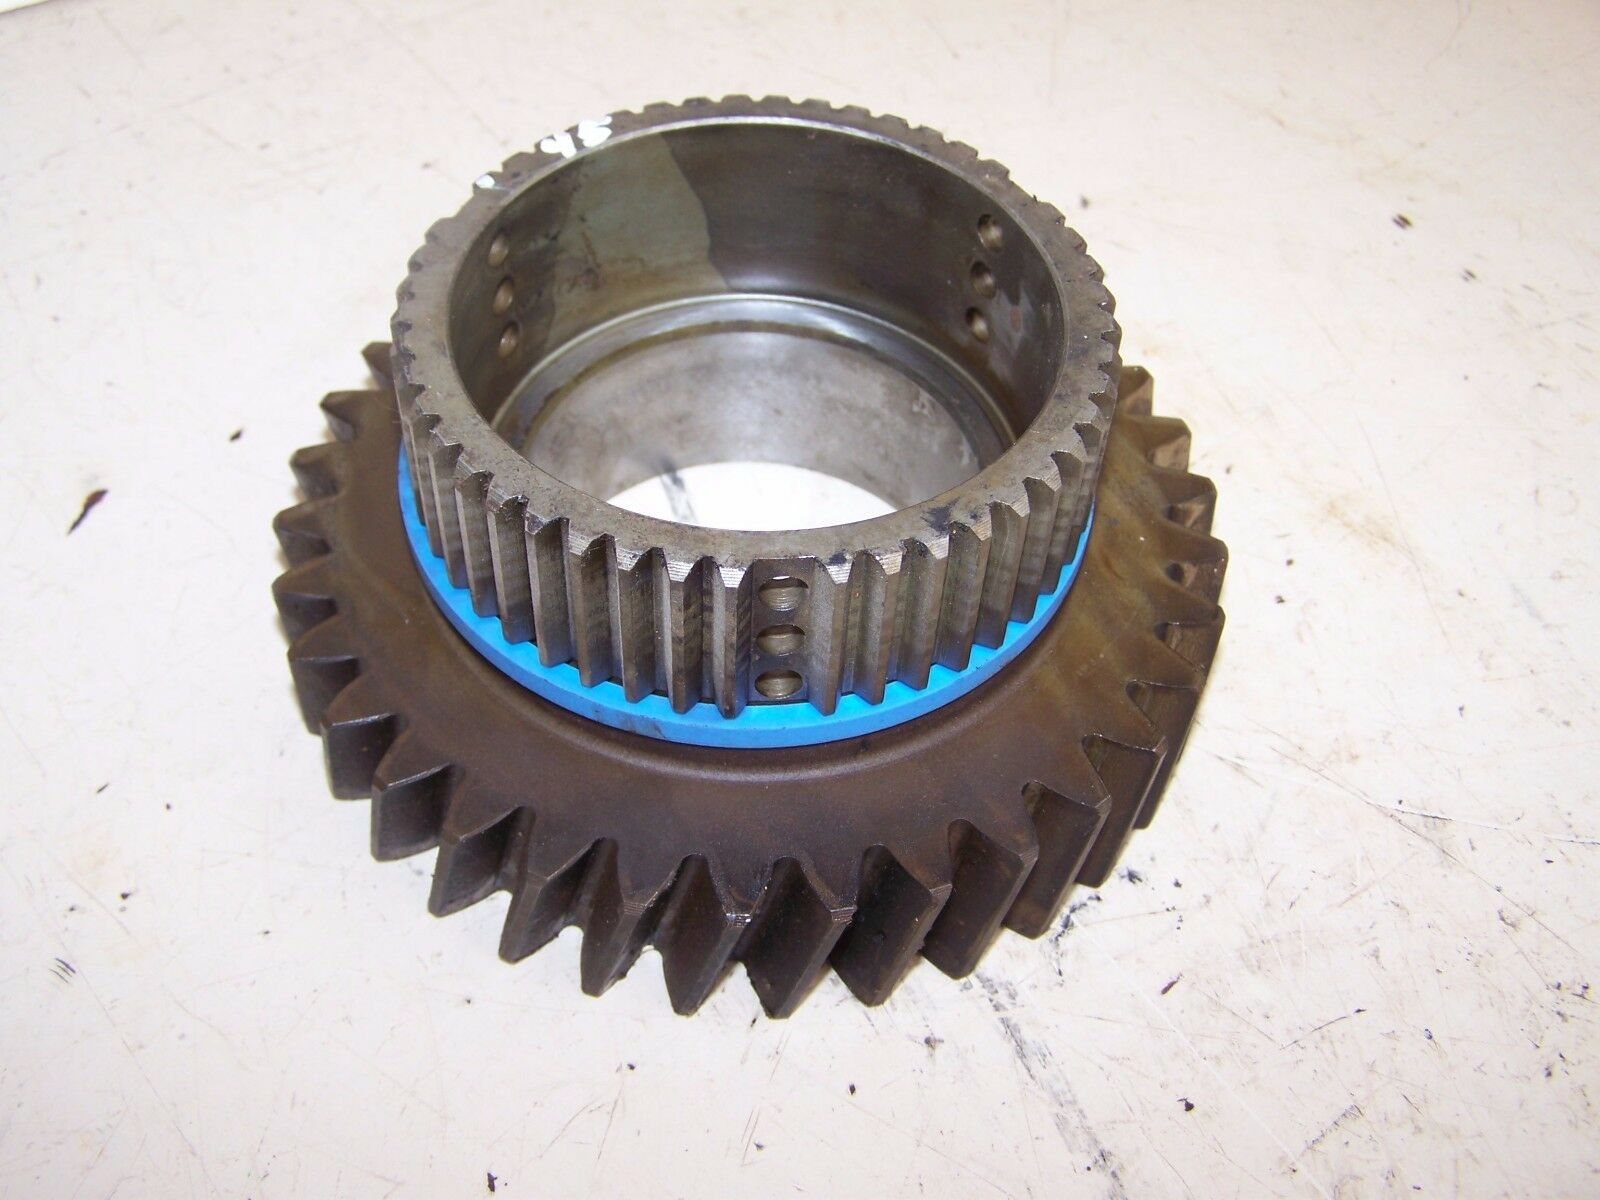 Case IH Odd/Even Clutch Gear 1285985C1 5th For 7110 7120 7130 7140 7150